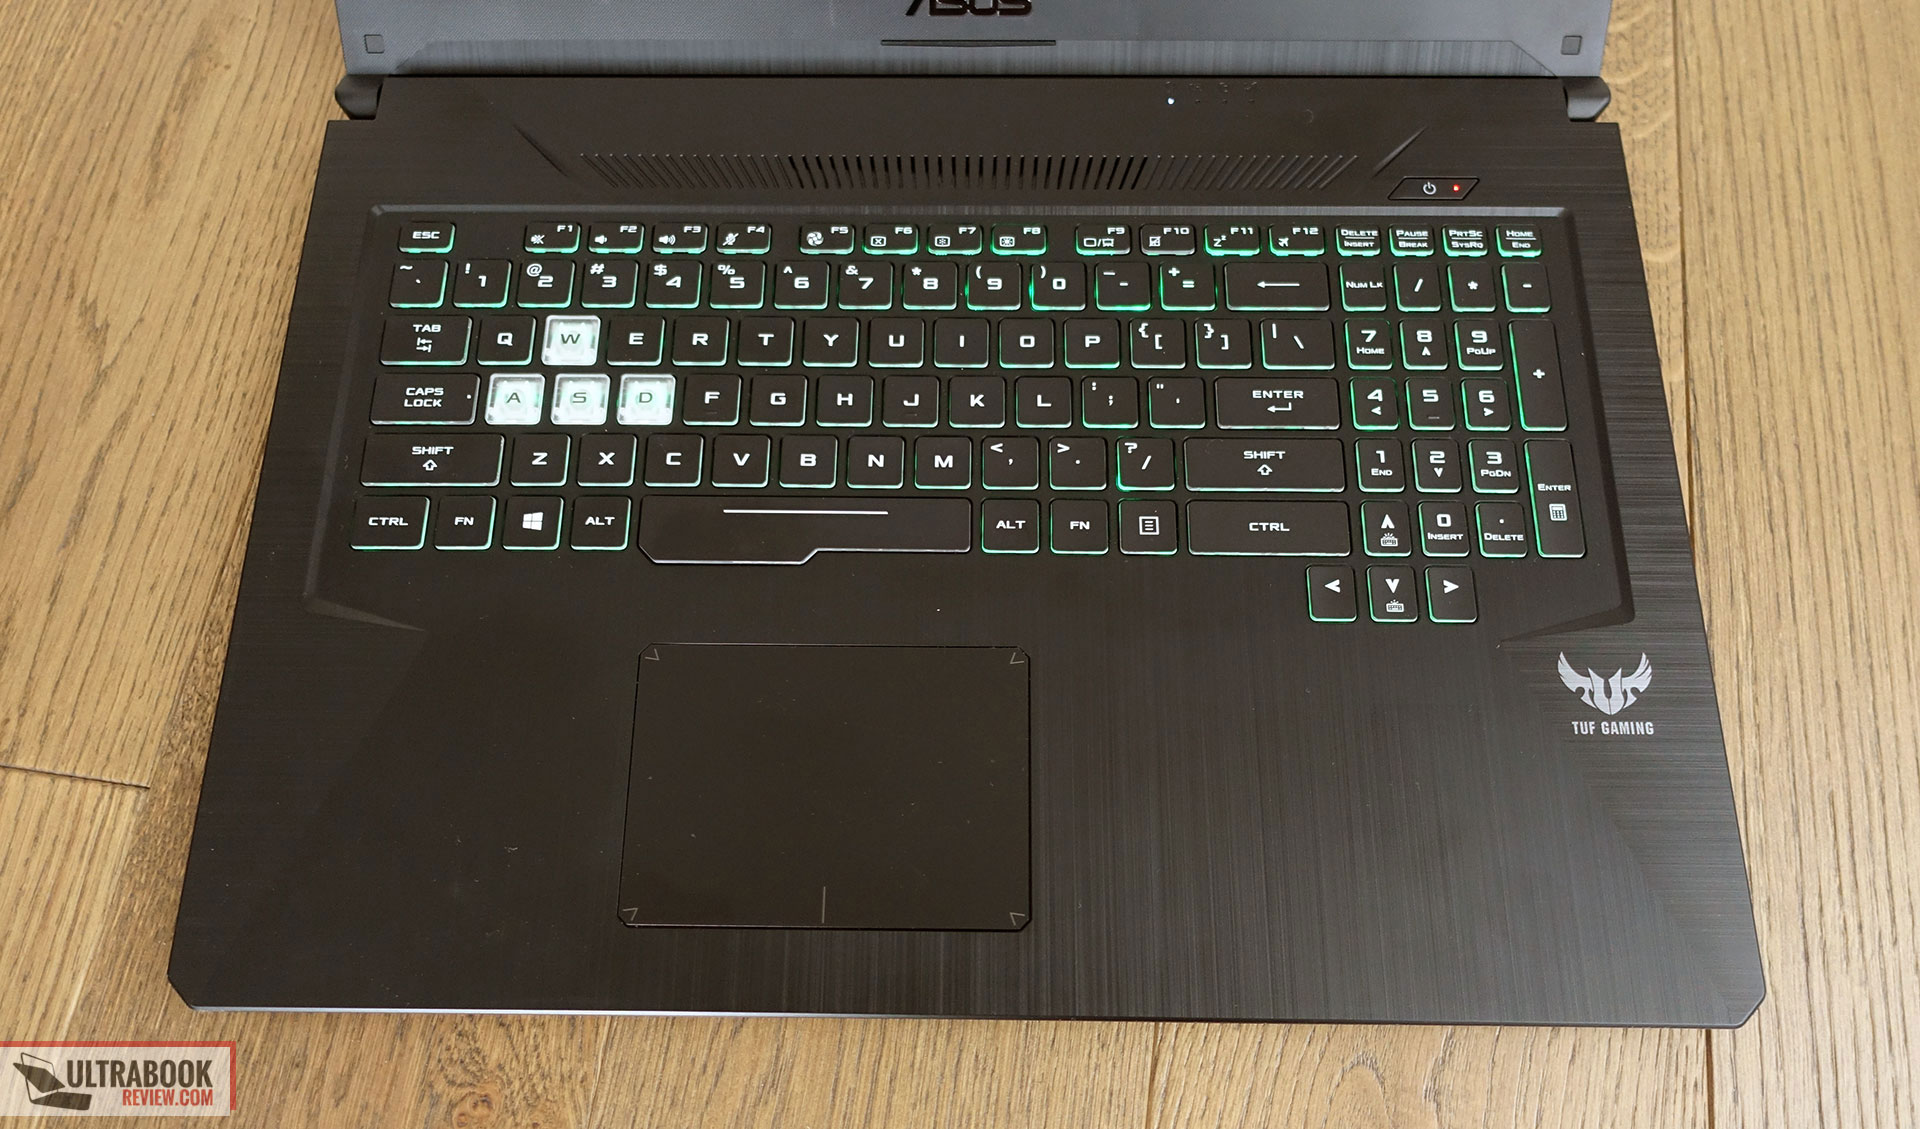 keyboard and clickpad - Asus TUF Gaming FX705